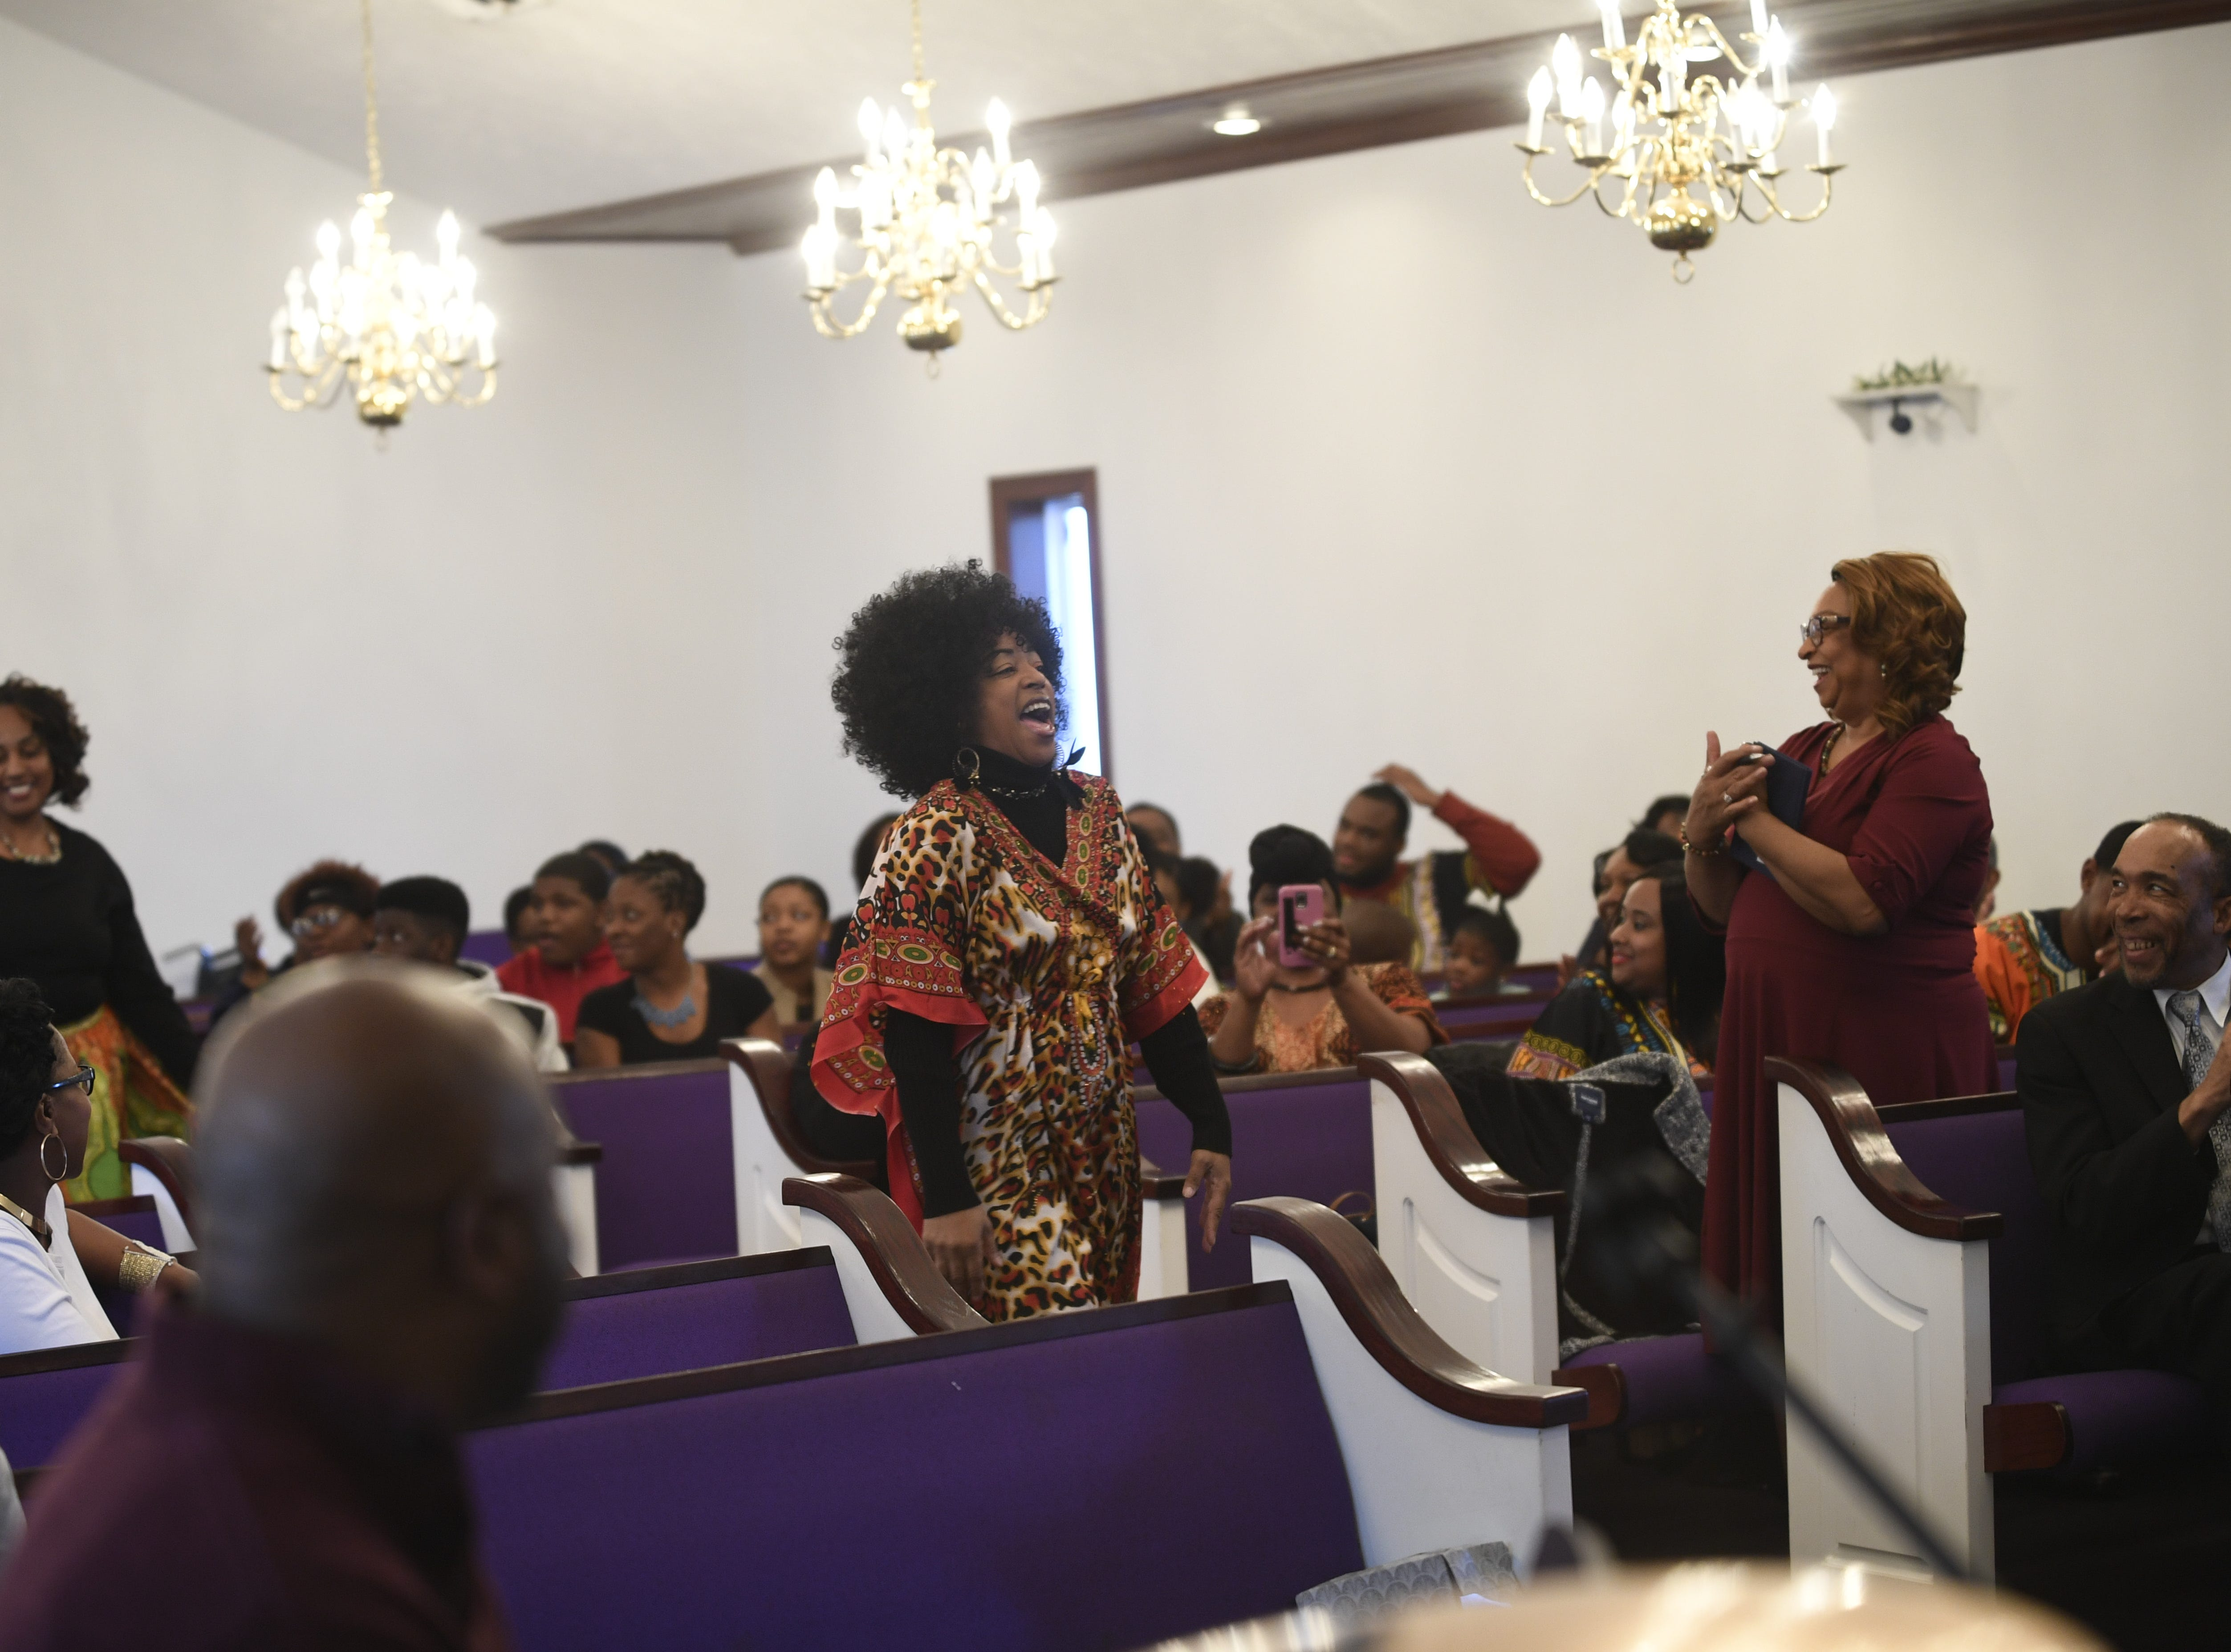 Vivan Mercer laughs as she comes on stage at Mt. Pleasant Church's Black History Month event, in Pinson, Tenn. Feb 24, 2019.